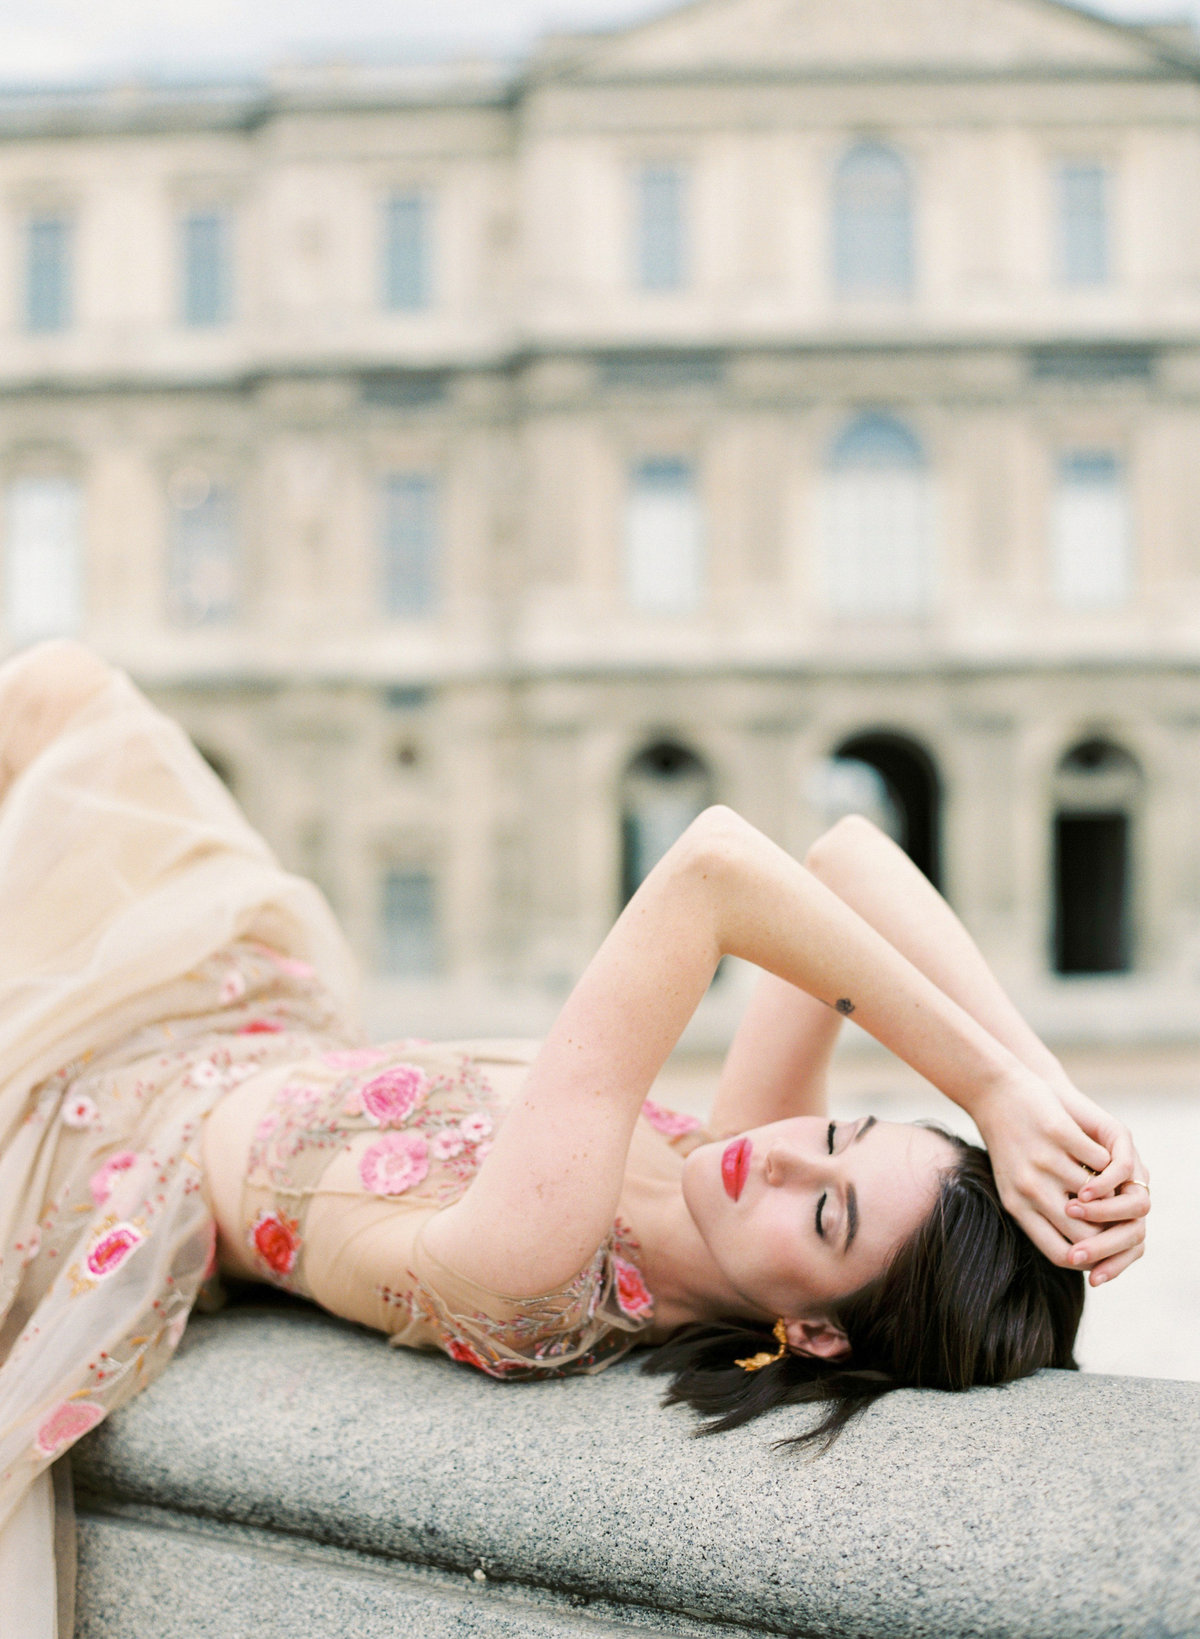 destination wedding photographer paris the lourve amelia soegijono 022